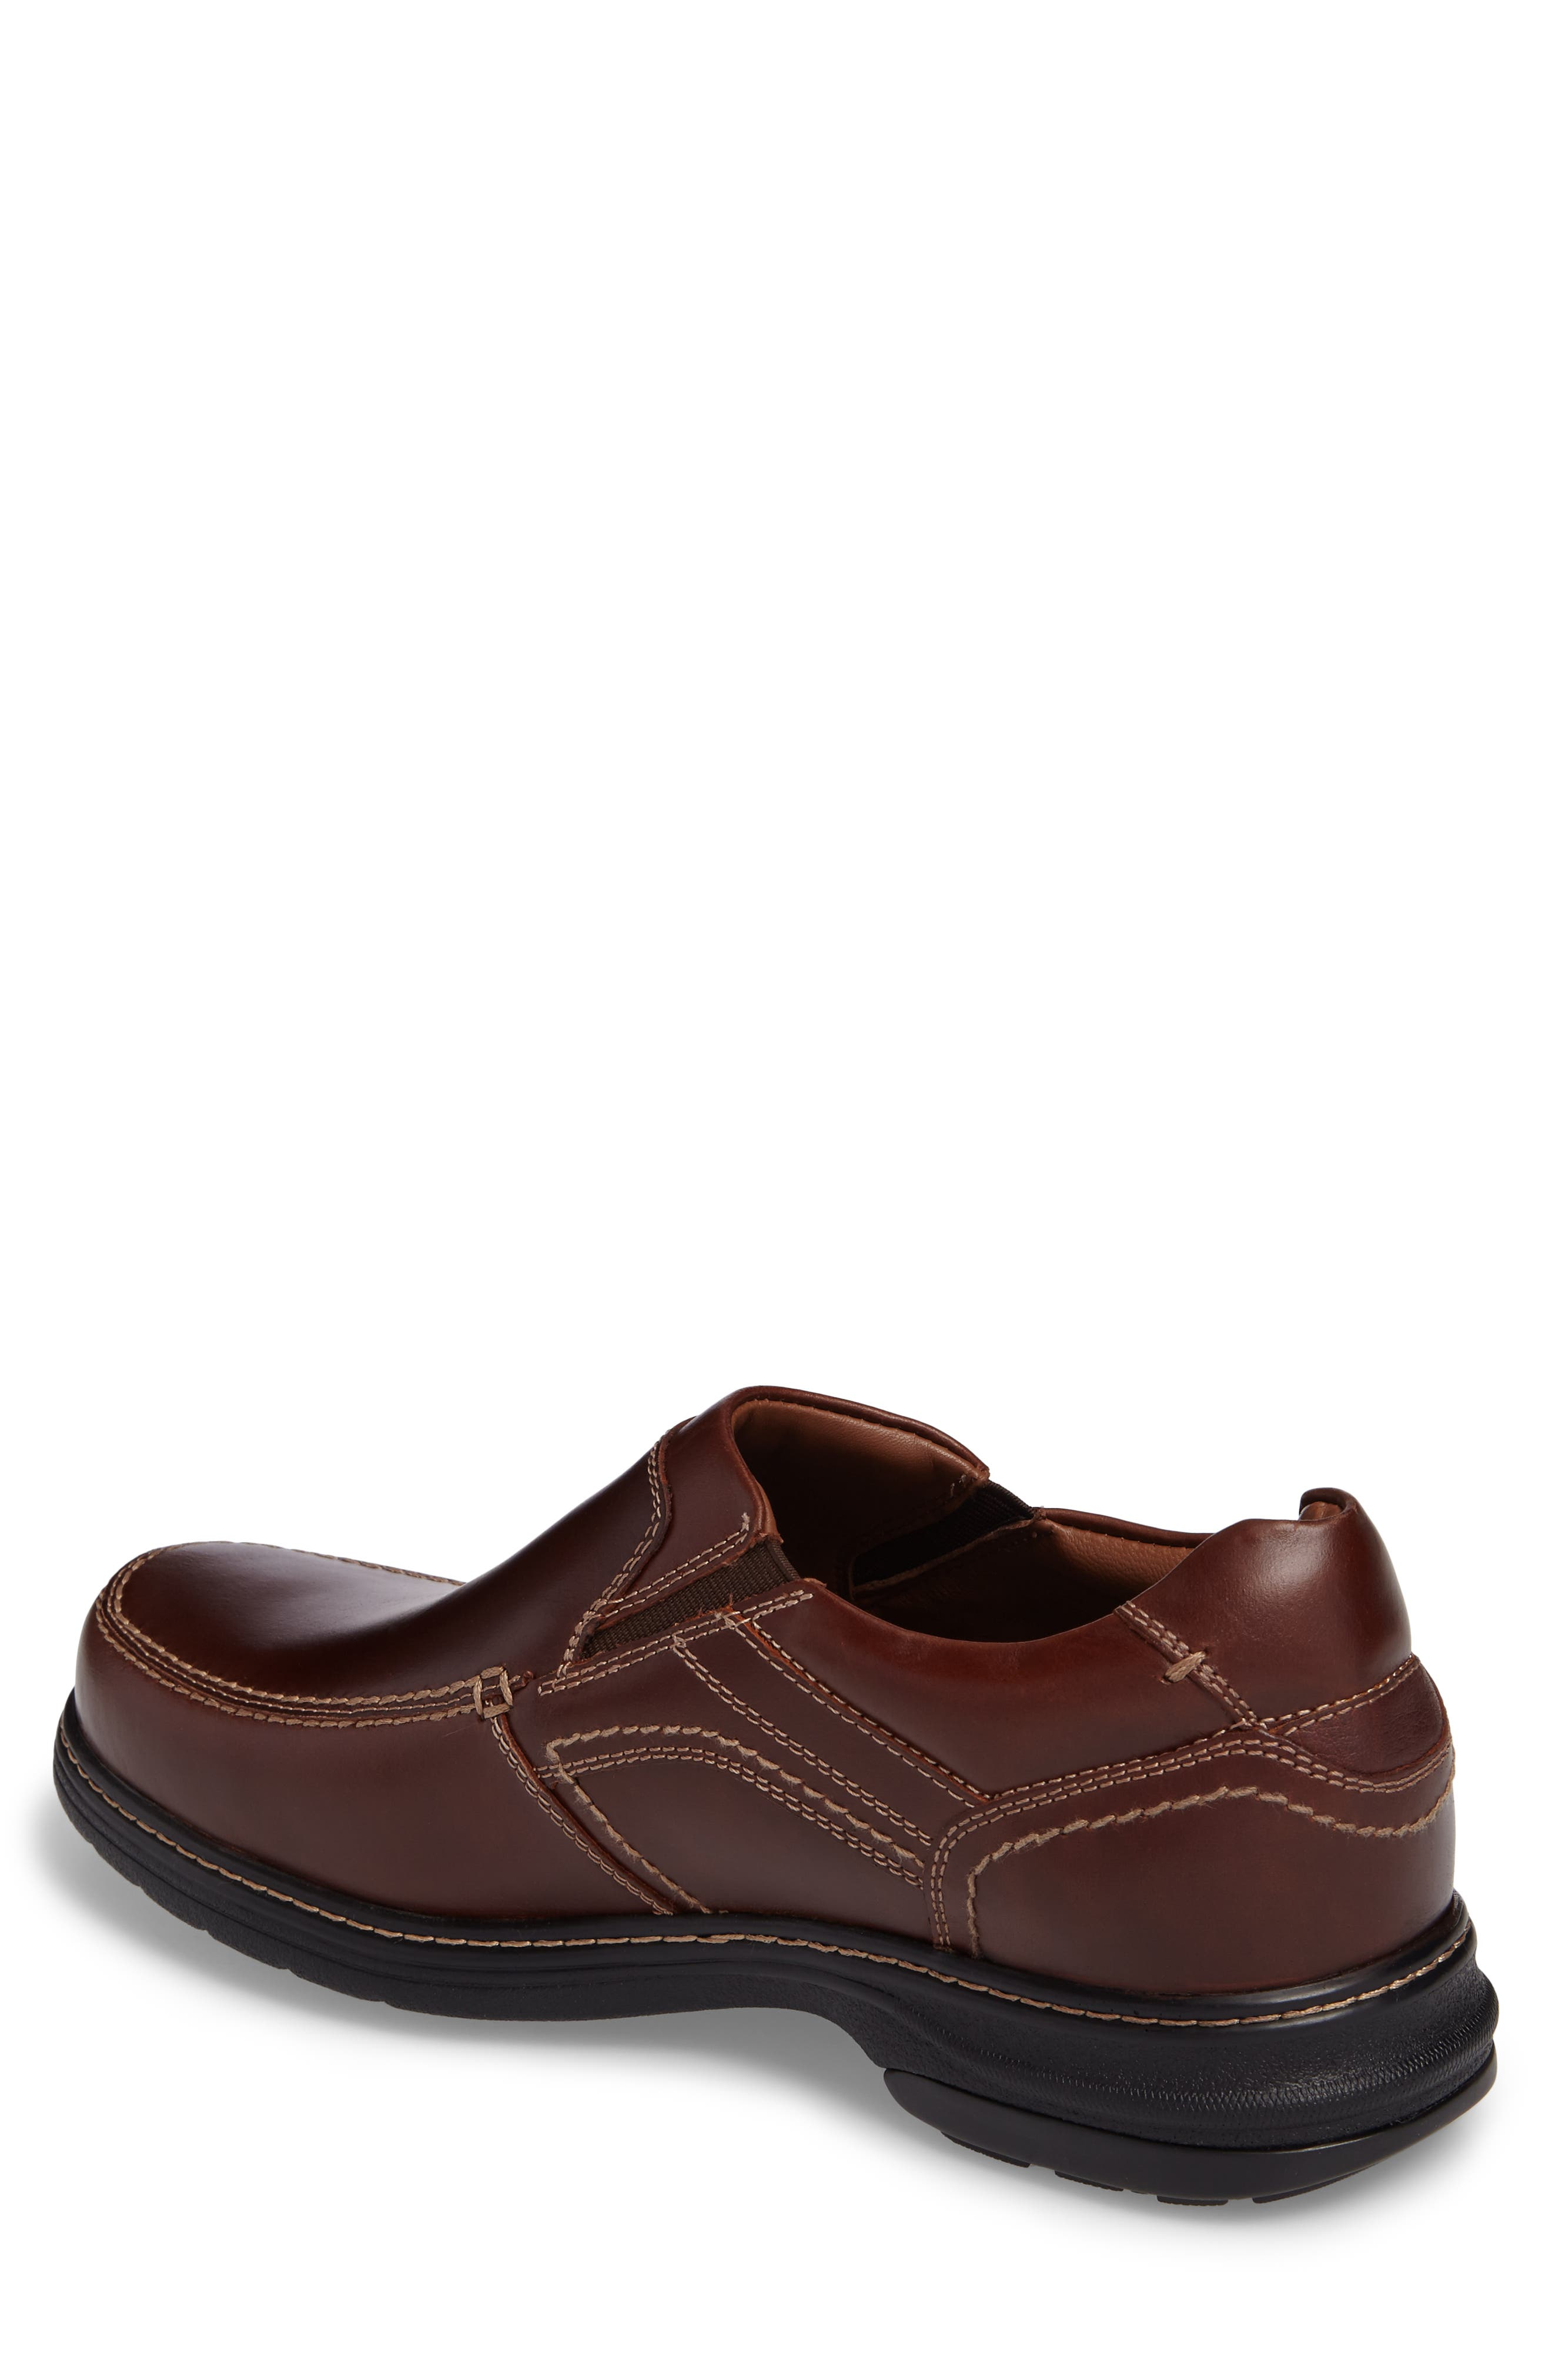 Windham Venetian Loafer,                             Alternate thumbnail 2, color,                             Mahogany